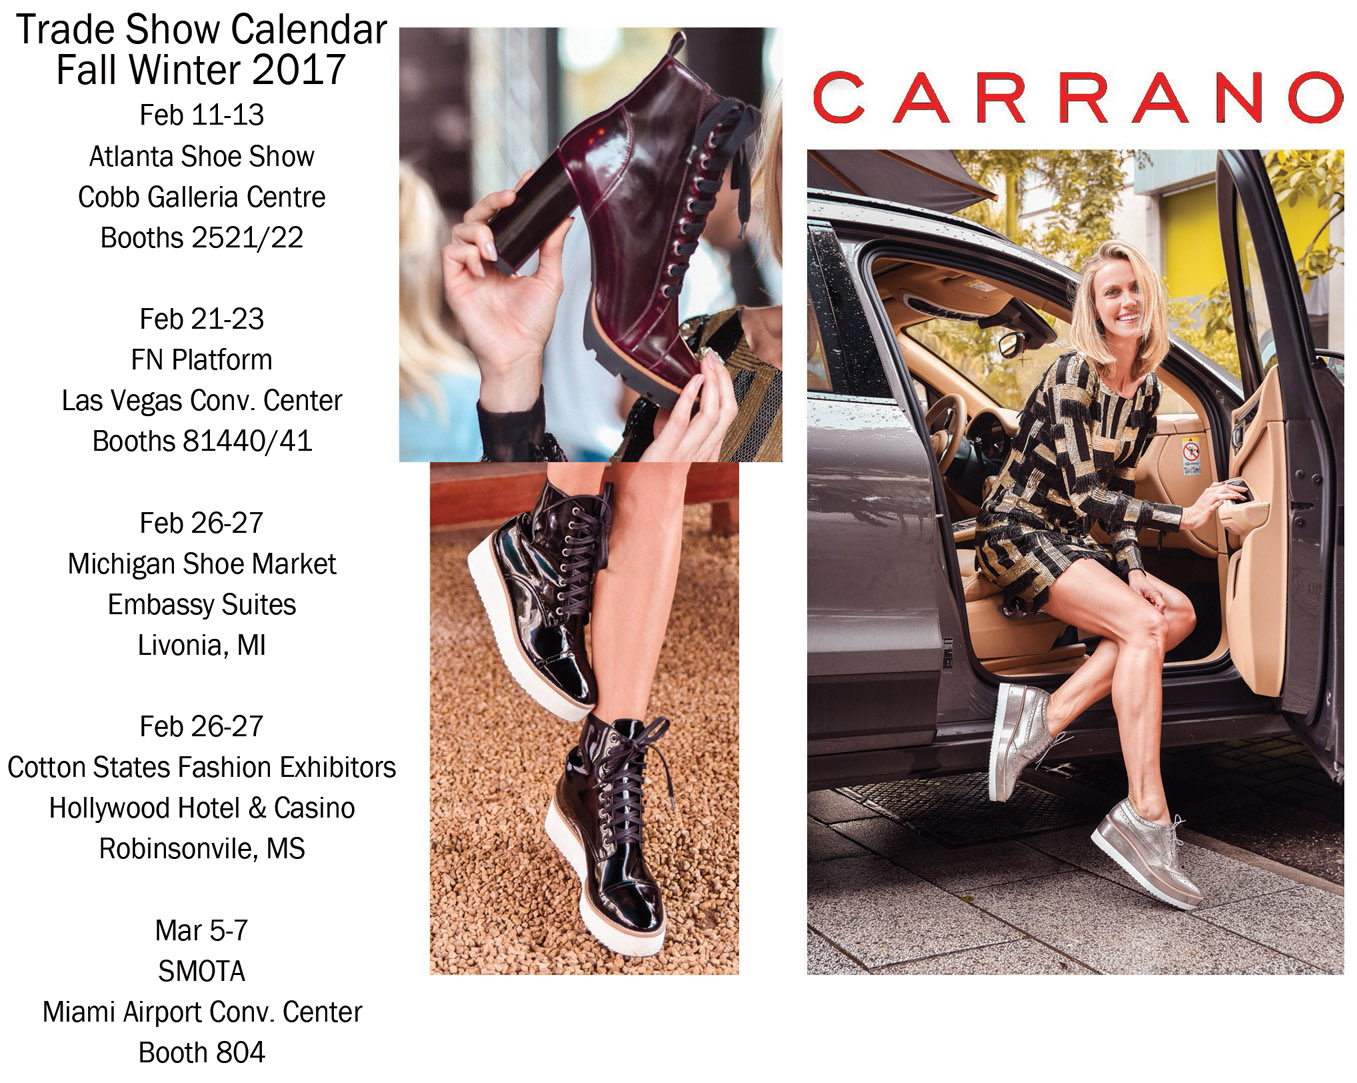 Carrano Shoes